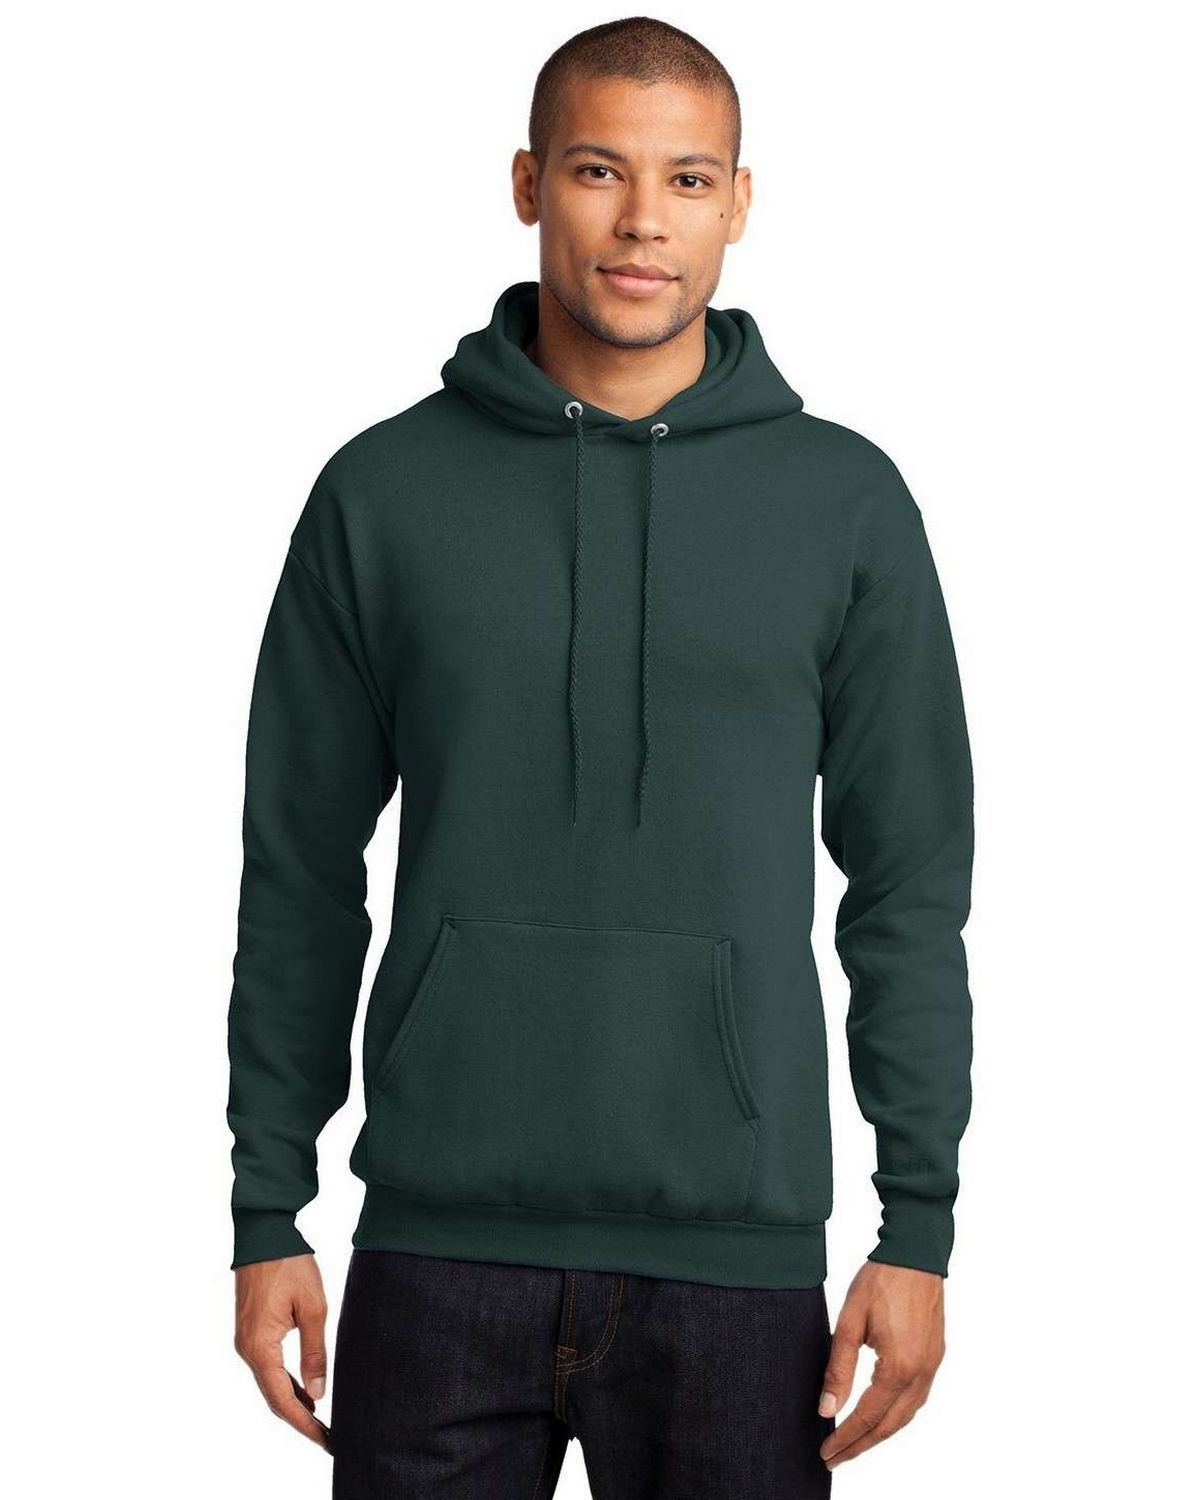 Port & Company PC78H Pullover Hooded Sweatshirt - Dark Green - XL PC78H